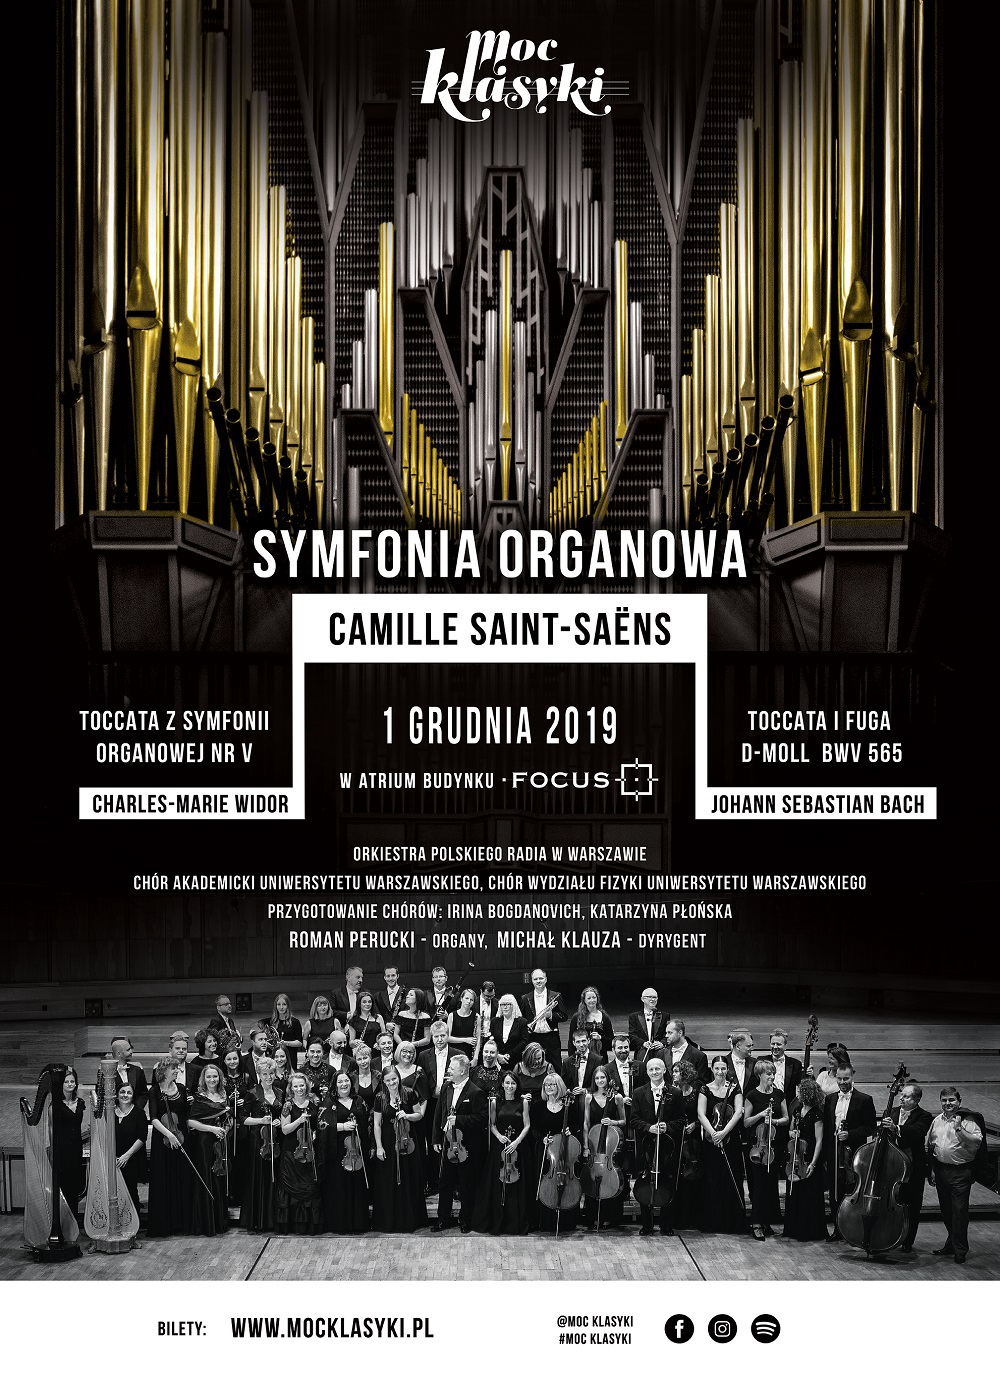 Organ Symphony - Focus building in Warsaw